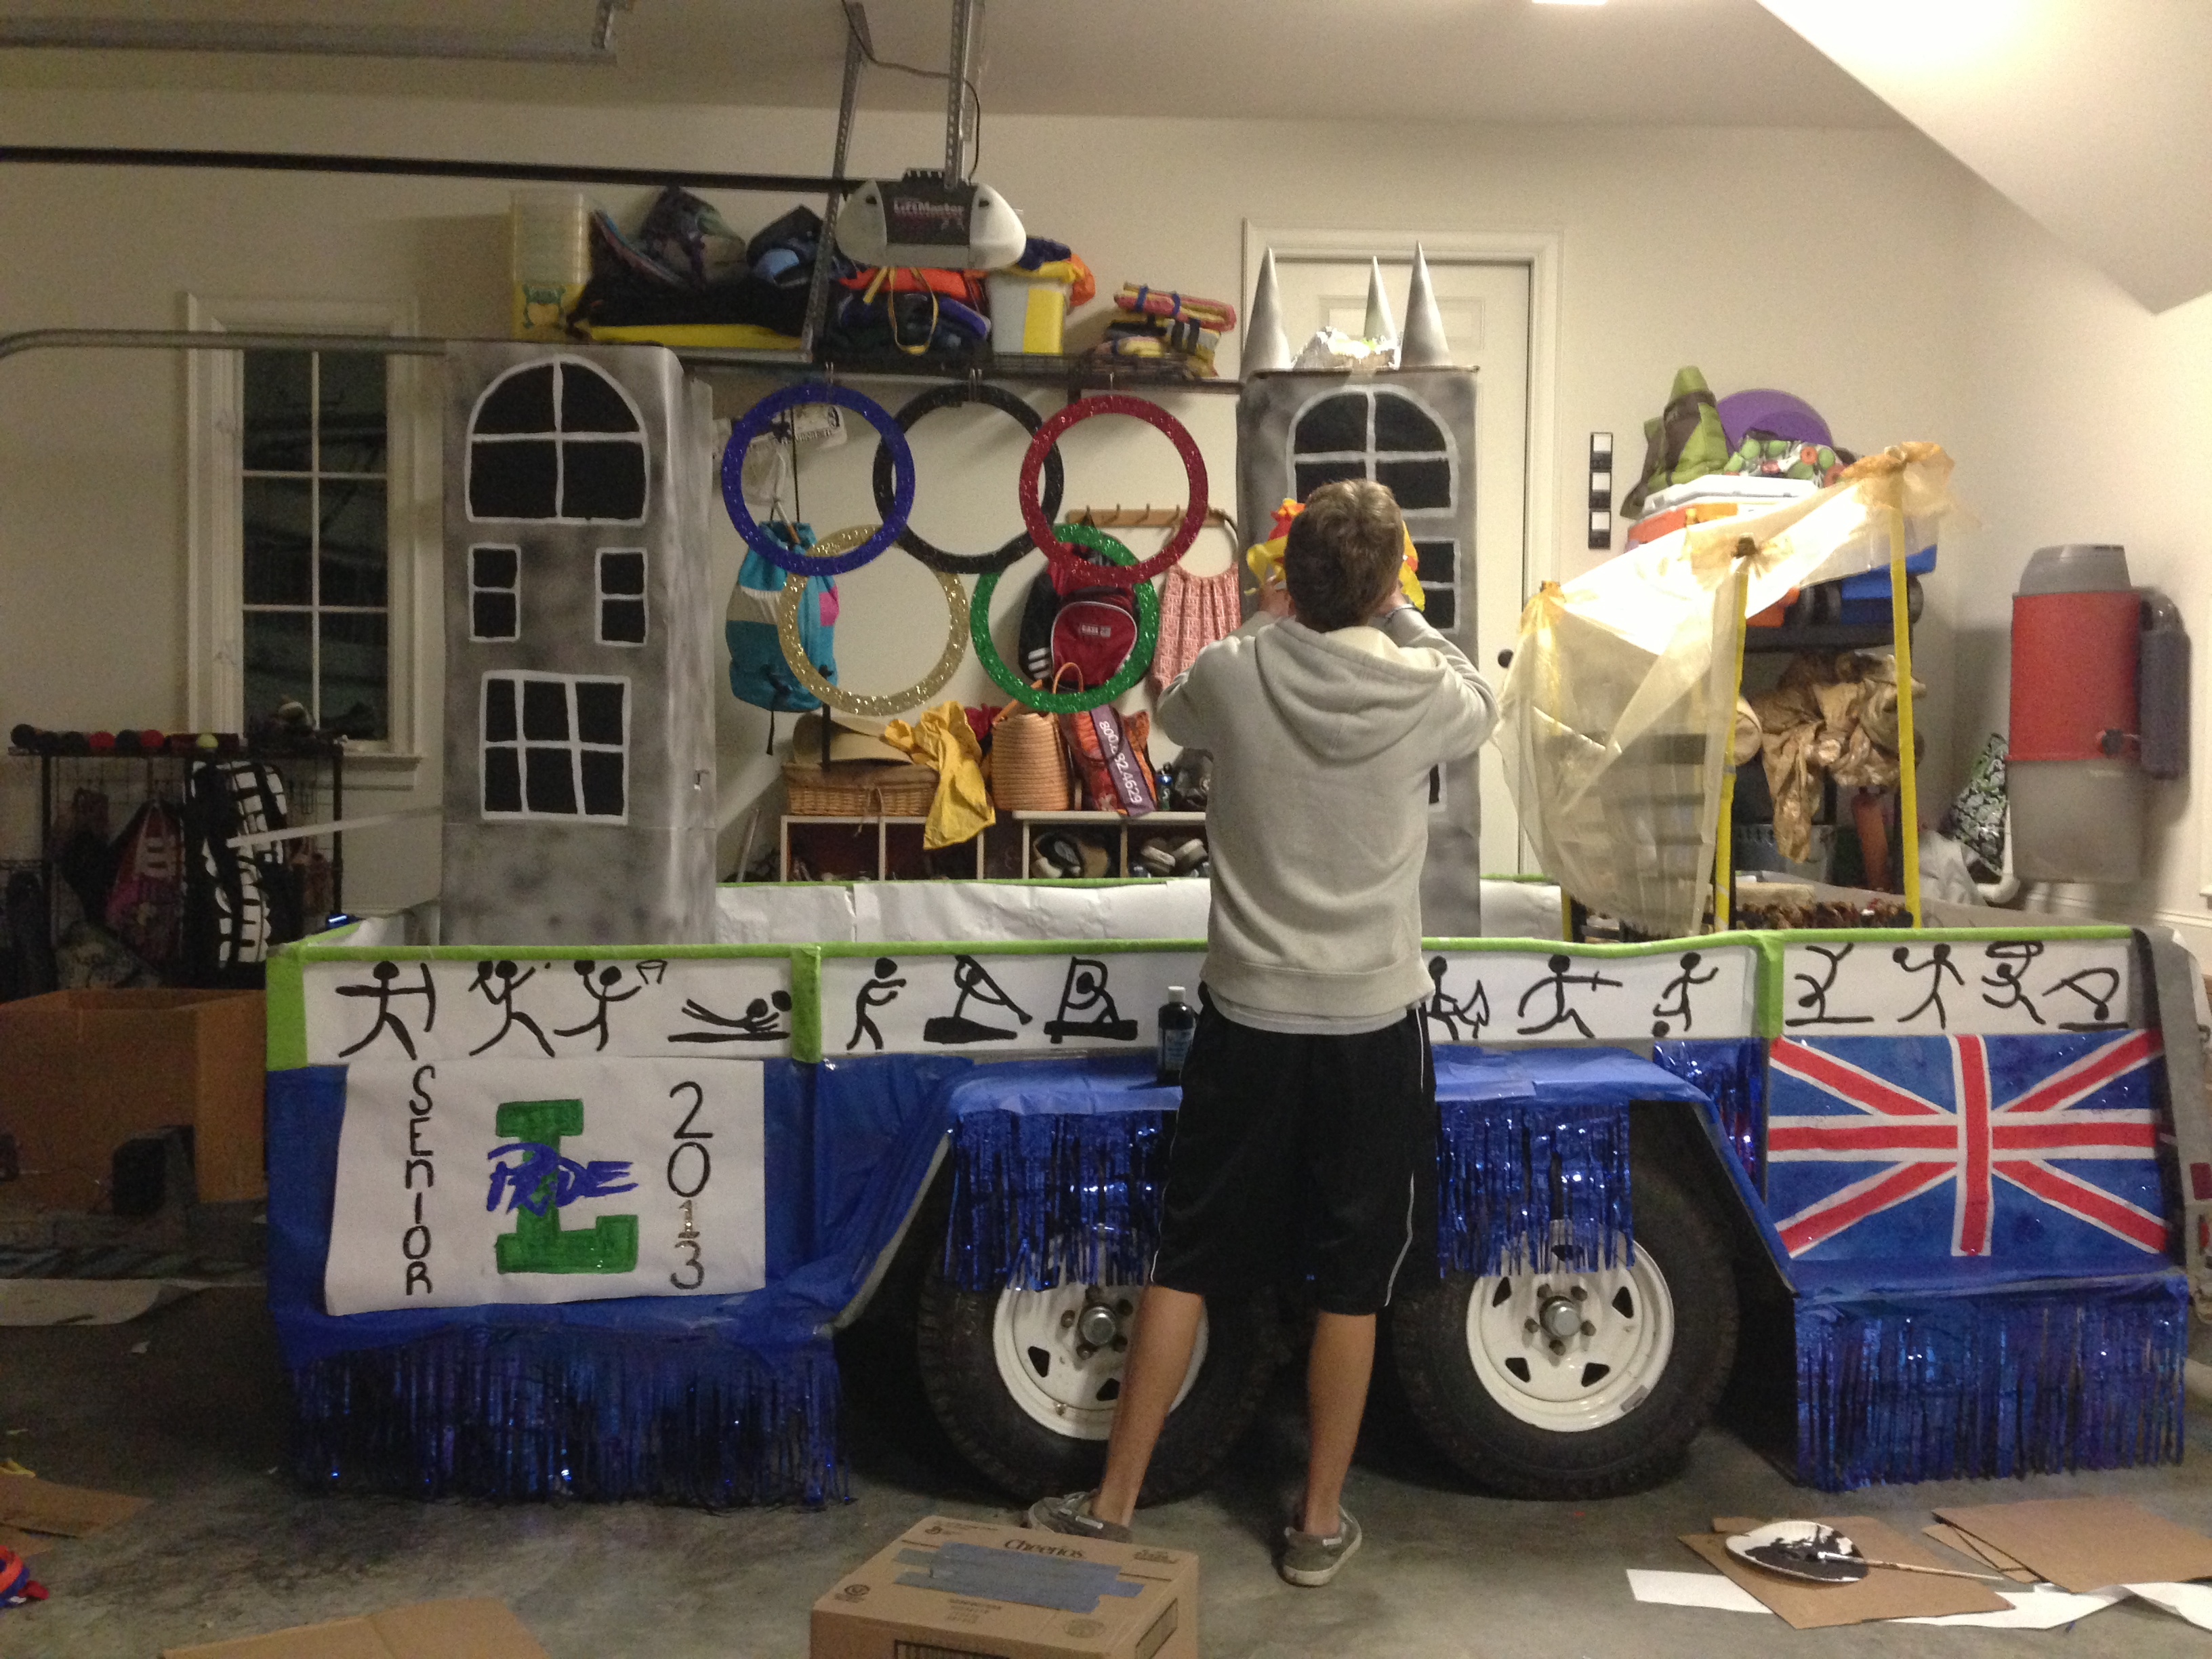 Preston Nix, senior, goes to work on the Senior Class Council float. Students spend hundreds of dollars on their homecoming floats each year.